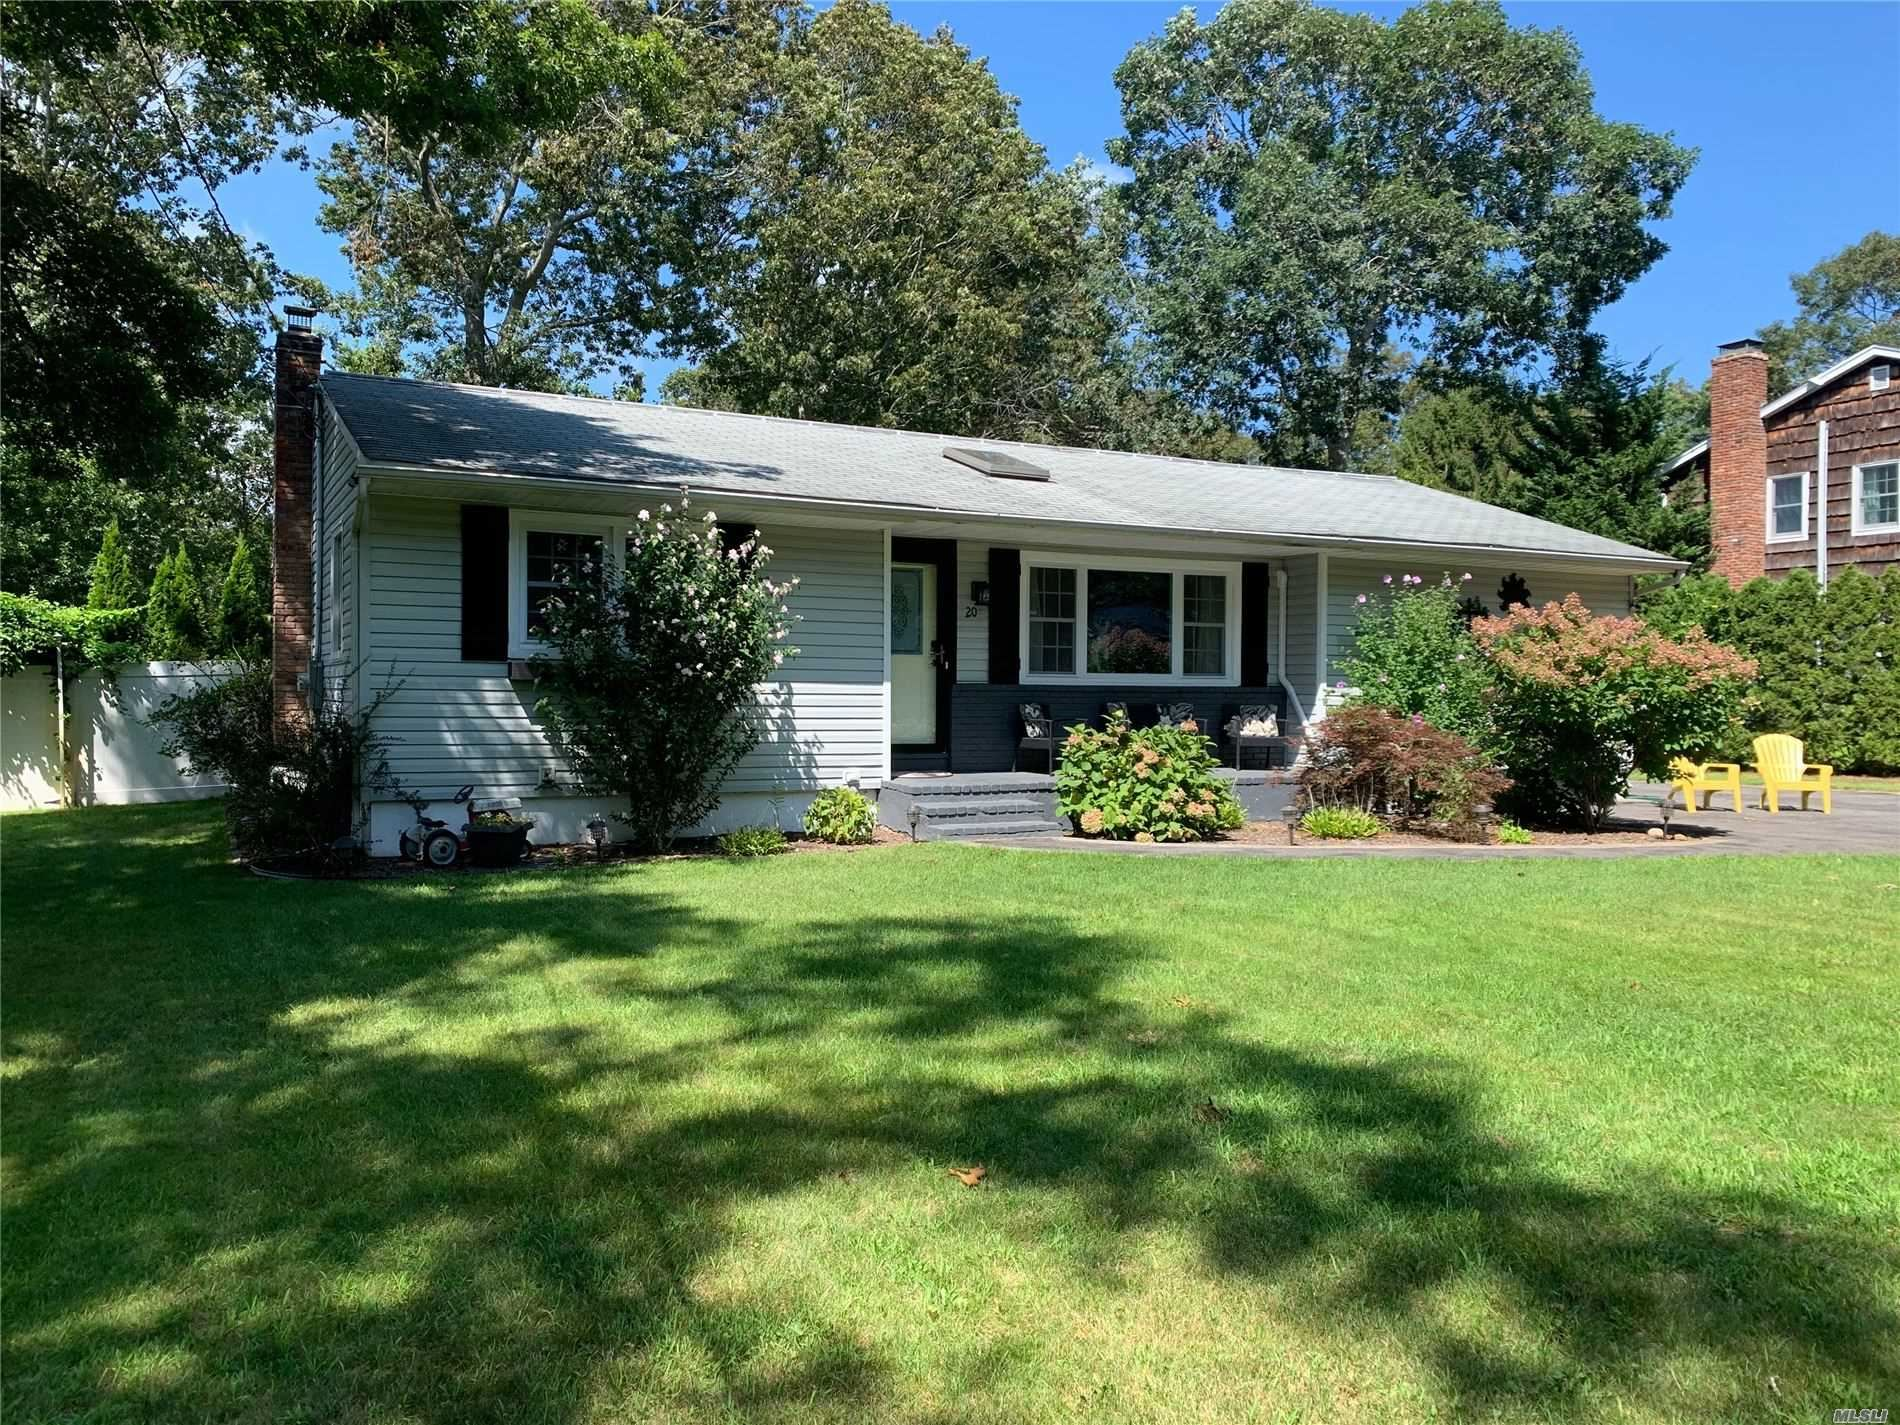 20 Kennedy Drive, East Quogue, NY 11942 - MLS#: 3244983